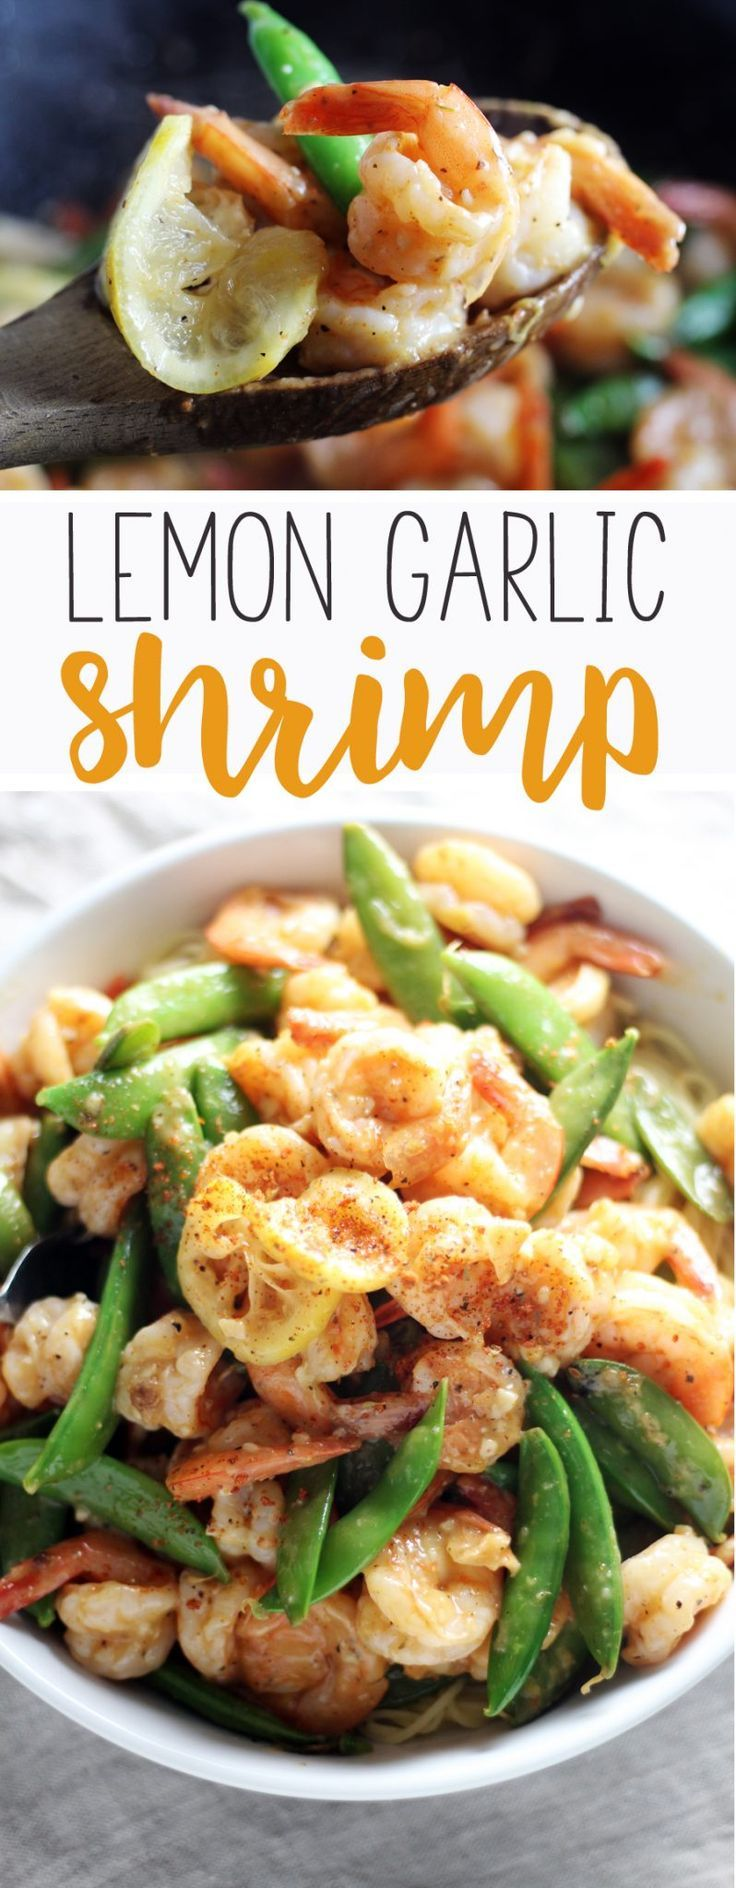 #ad A fast + fabulous recipe for Lemon Garlic Shrimp. The light and zesty lemon garlic sauce clings to every bite for an amazing meal.    Make this recipe easy with @PAM Cooking Spray from @Walmart.  #YouPAMDoIt #PAMInControl #lemongarlicshrimp